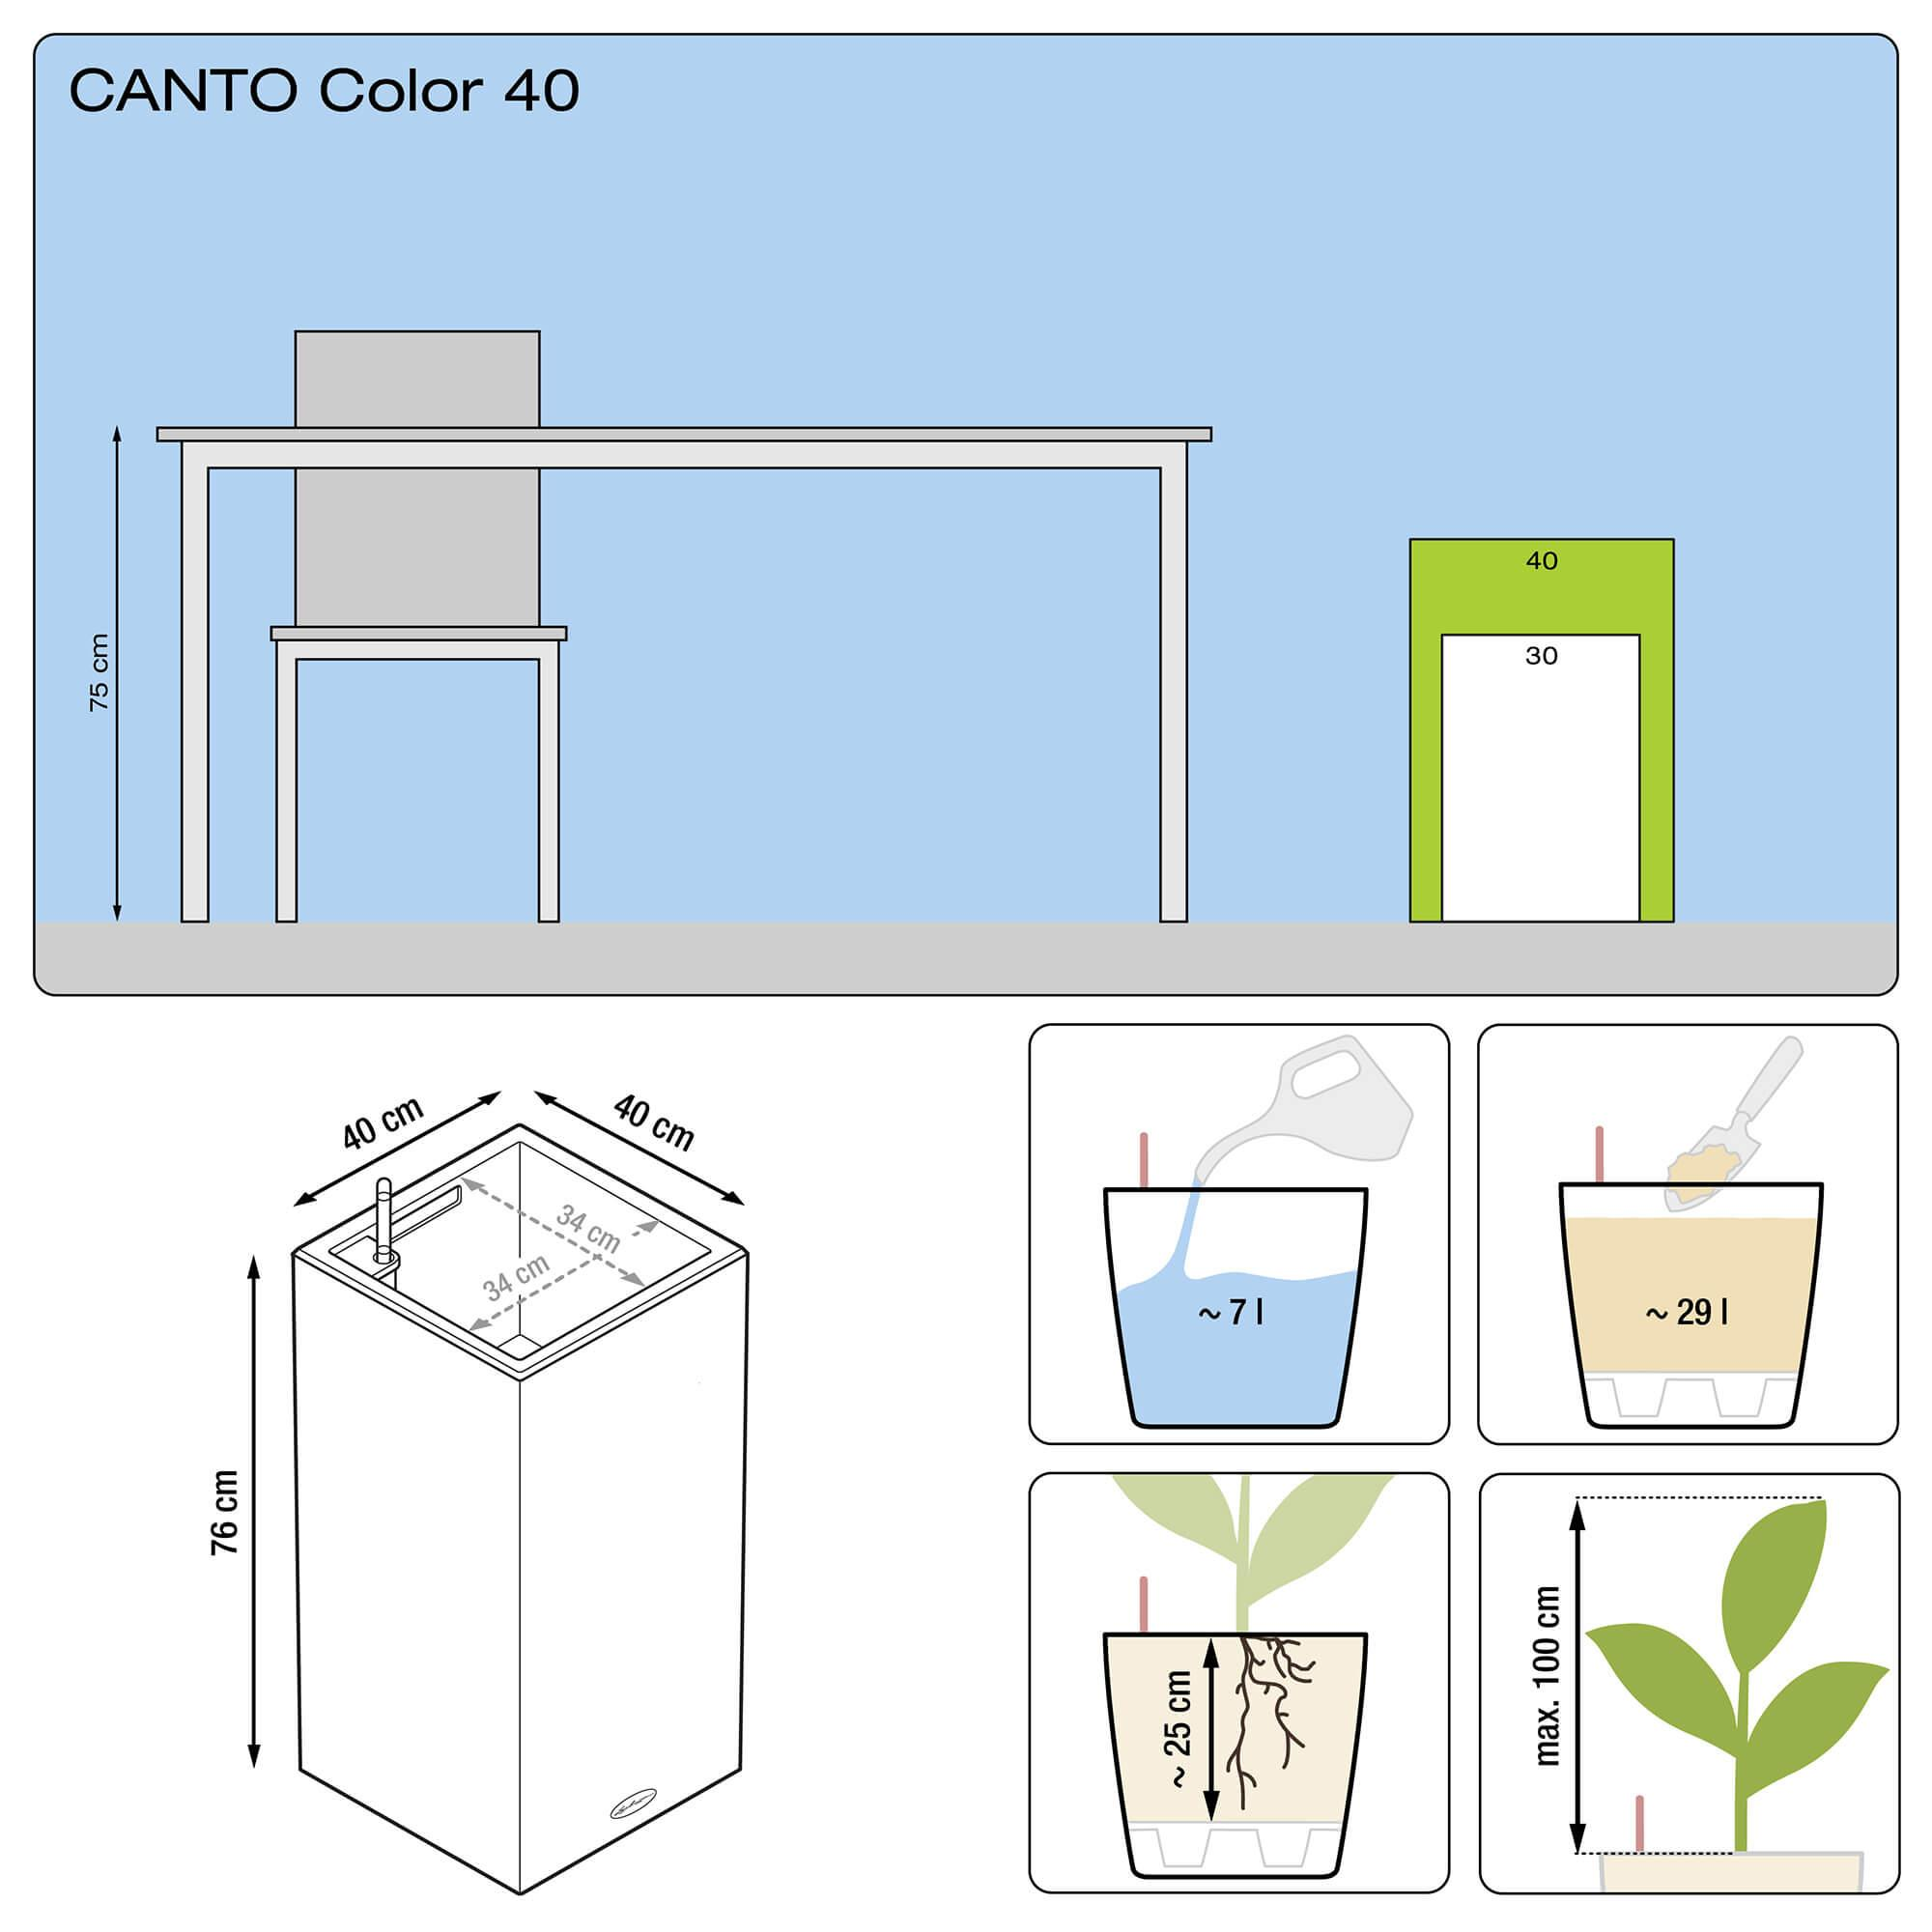 le_canto-color-saeule40_product_addi_nz